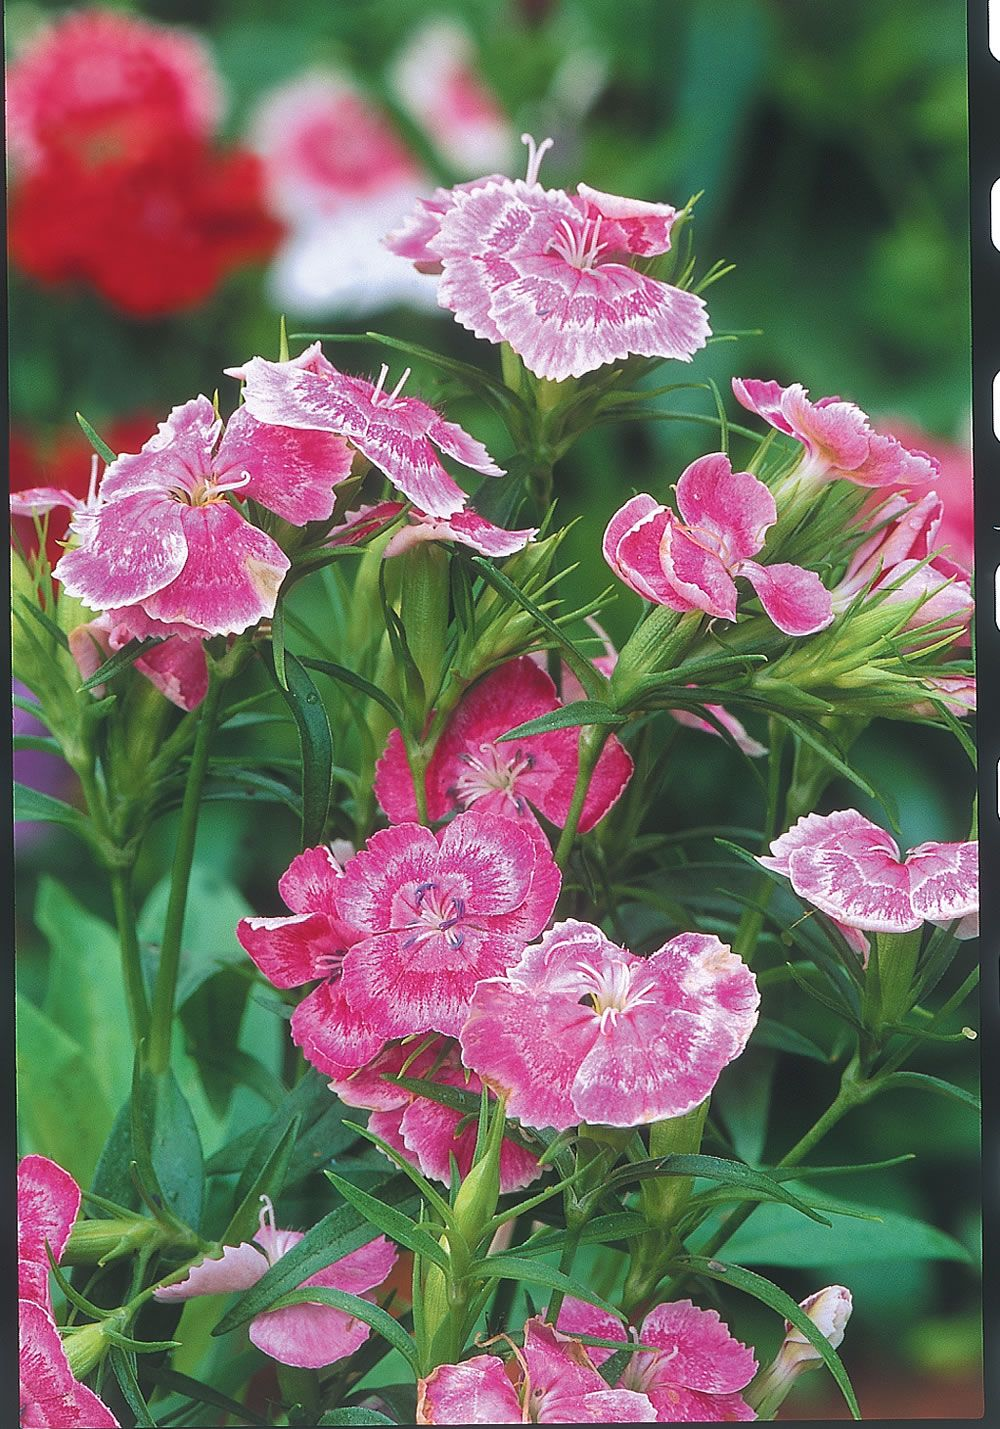 At just 5 inches tall, dianthus 'Wee Willie' is ideal for